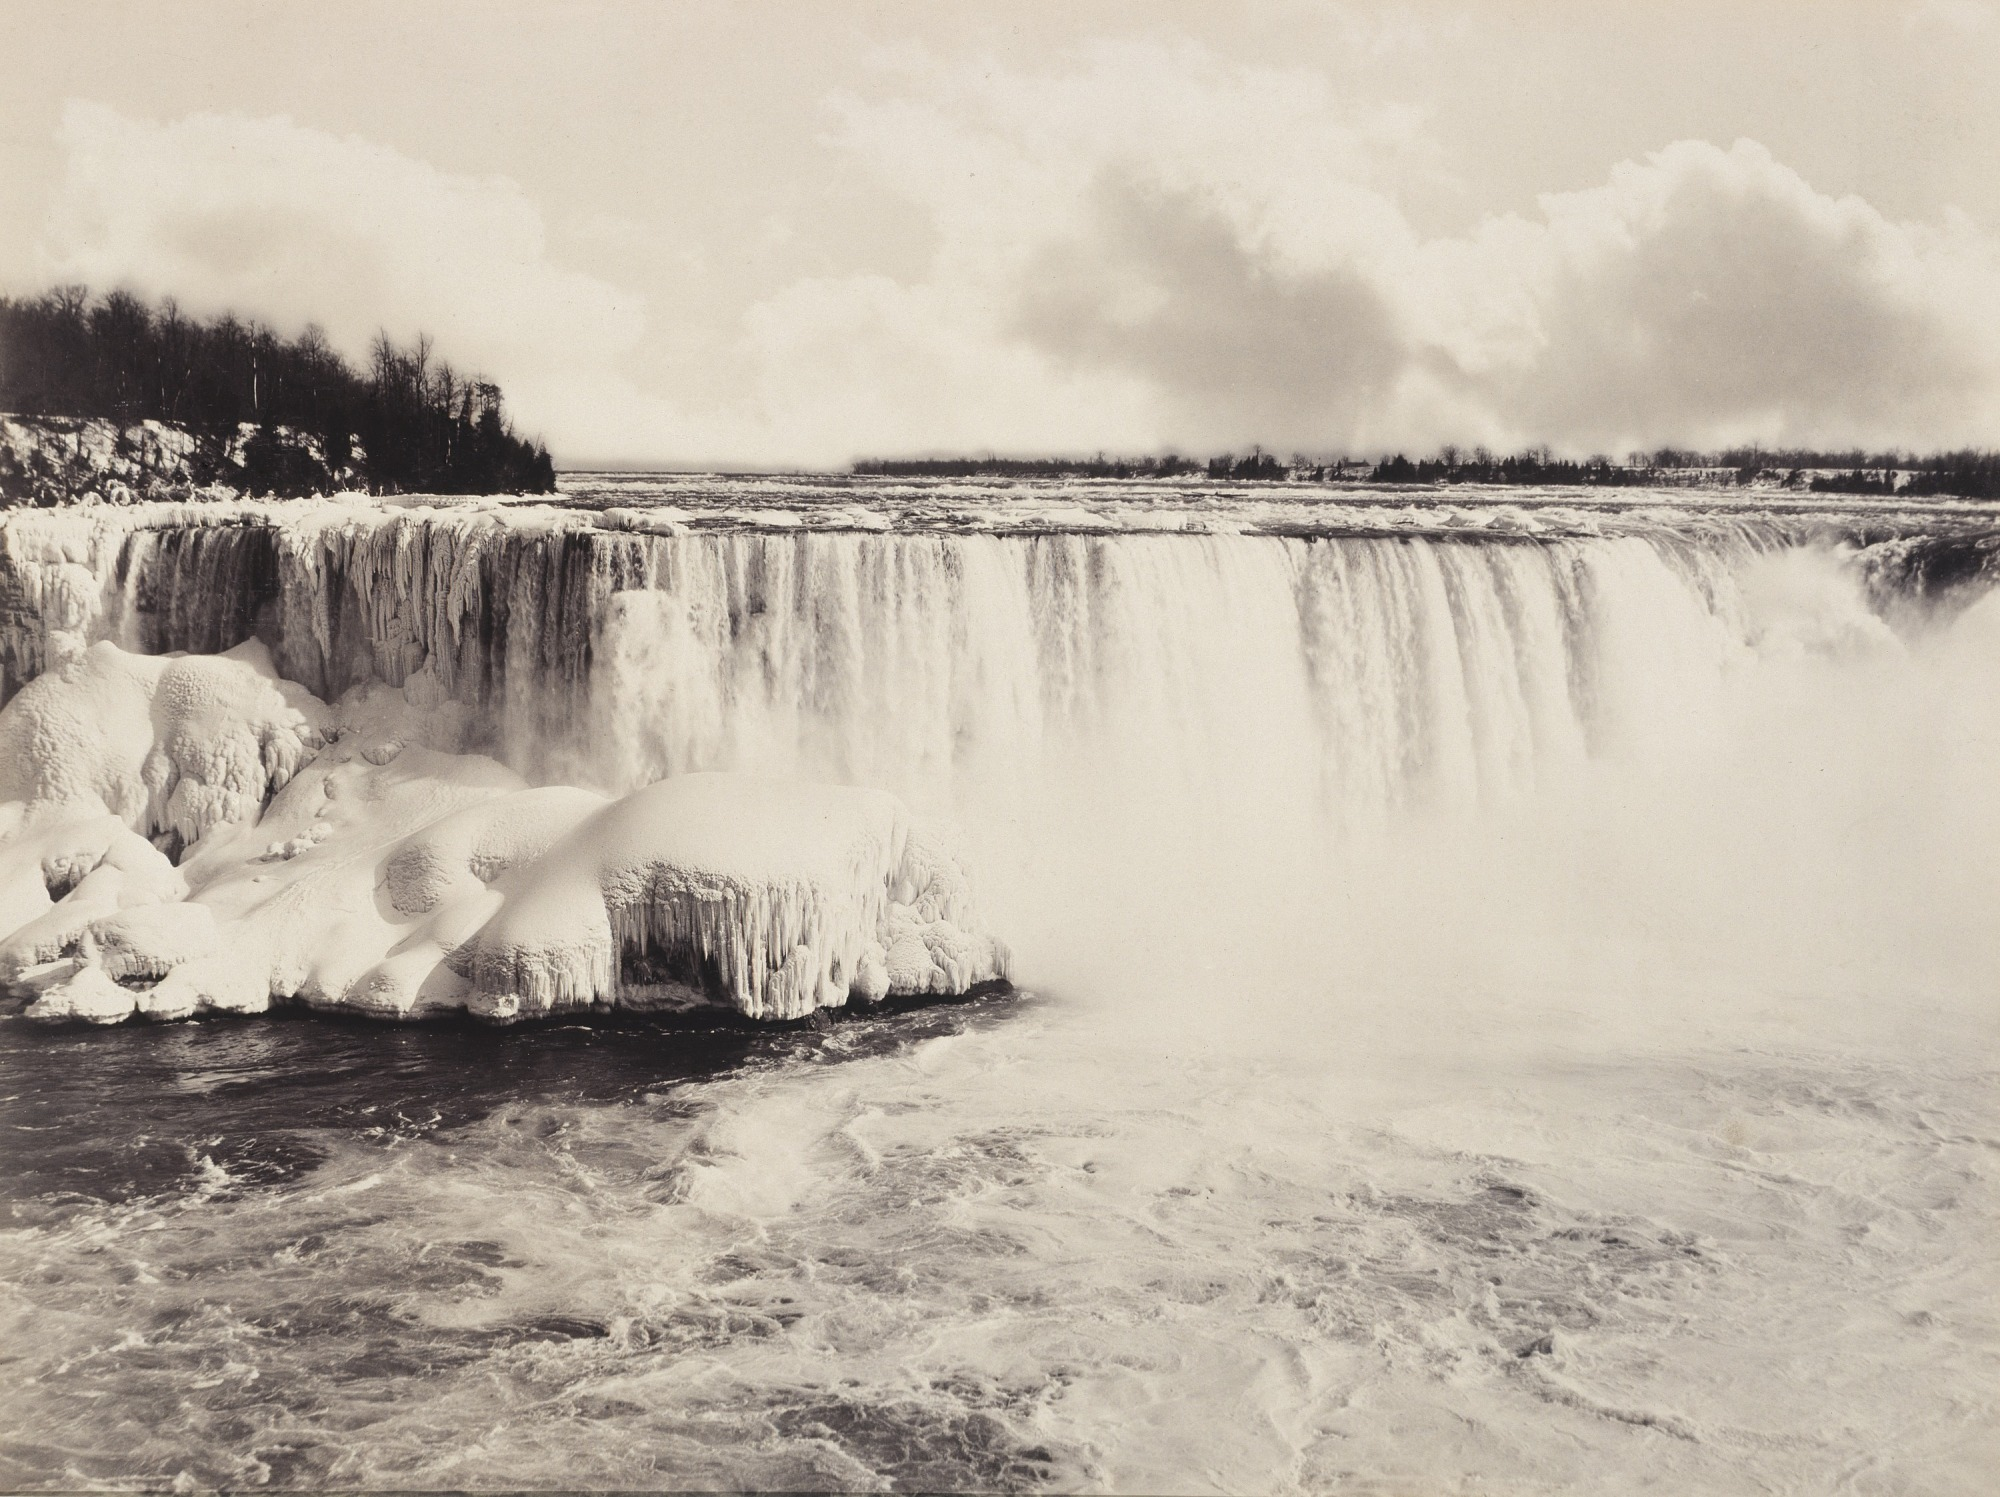 The Canadian Falls, Winter